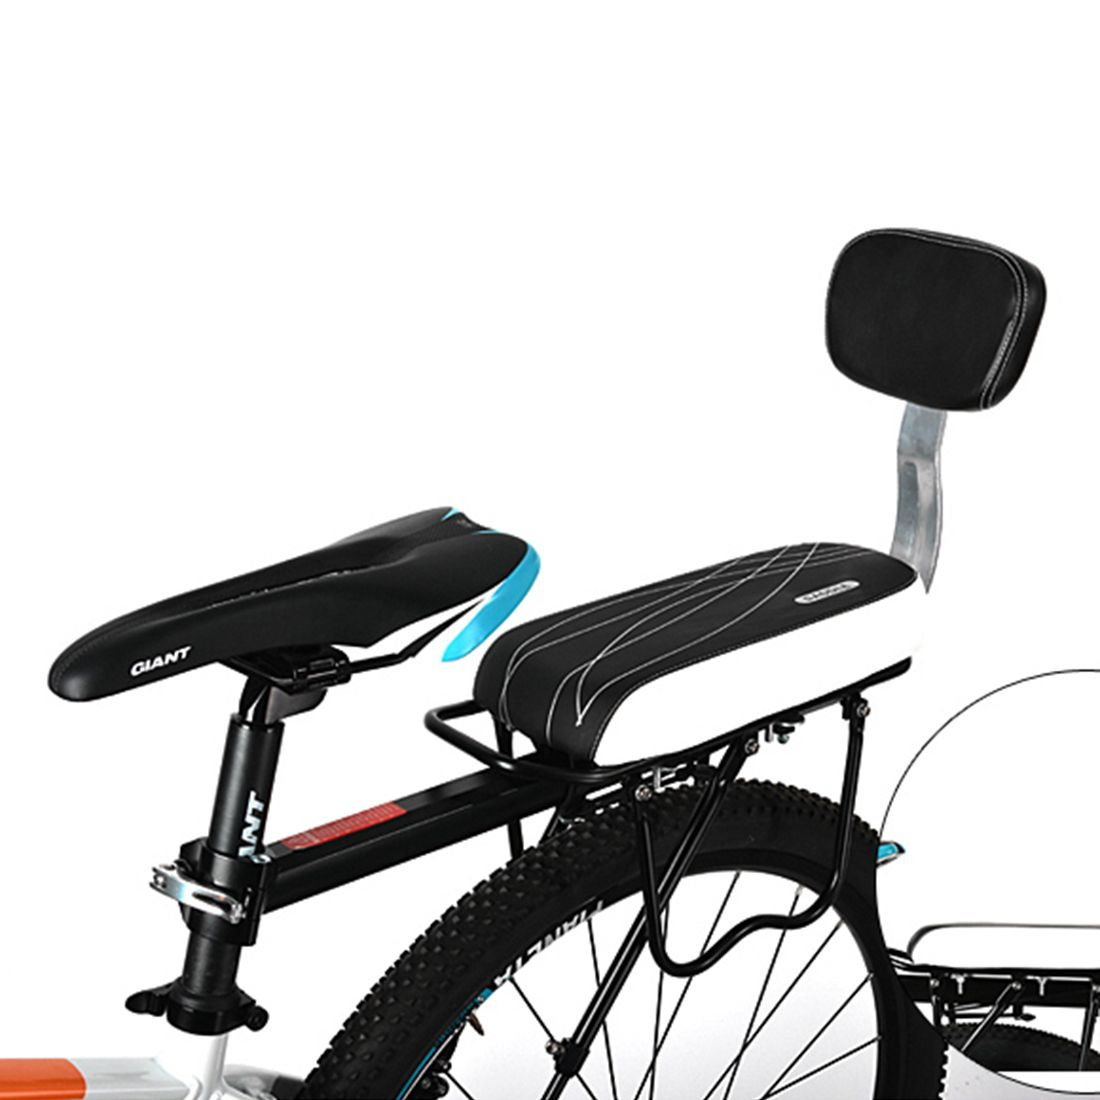 Bicycle Child Seat Pu Leather Cover Bike Rack Cushion For Kid S Bicycle Seat Kids Bicycle Bicycle Child Seats Bicycle Seats